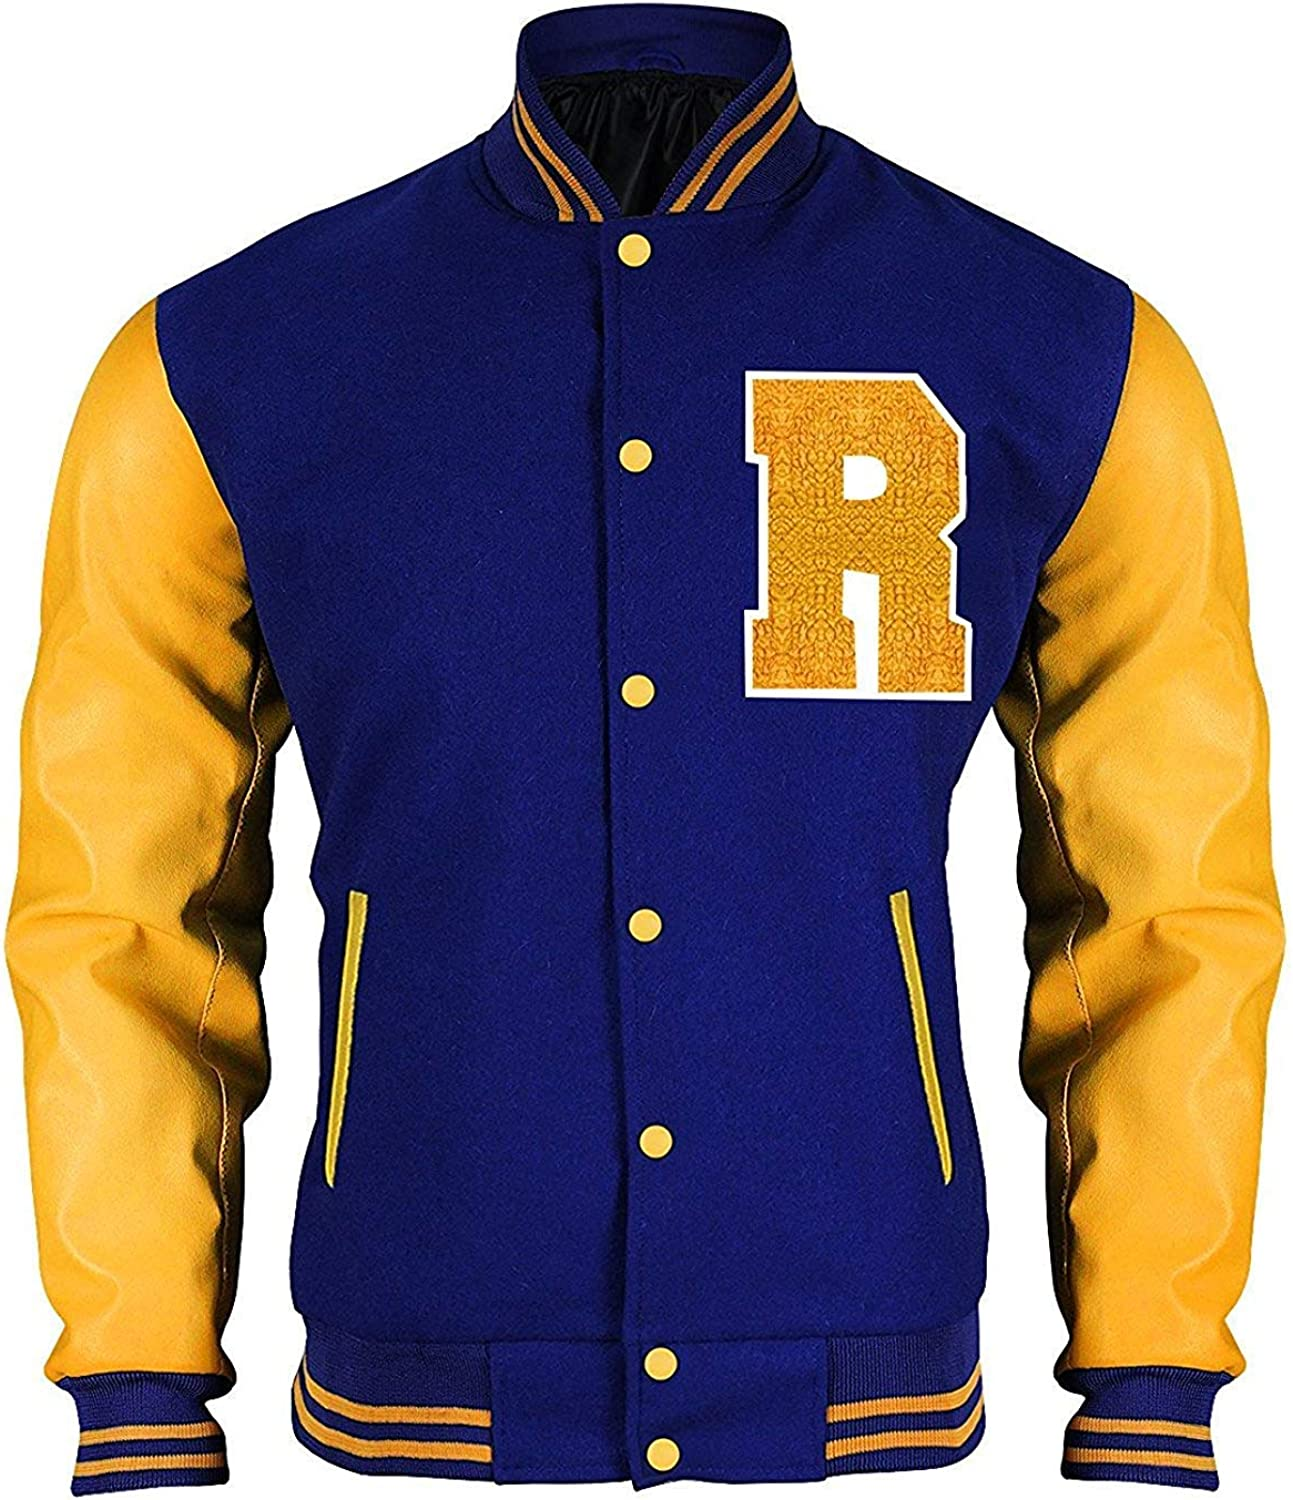 Fashion/_First Riverdale Giacca Archie Andrews KJ APA Varsity Letterman R Bomber